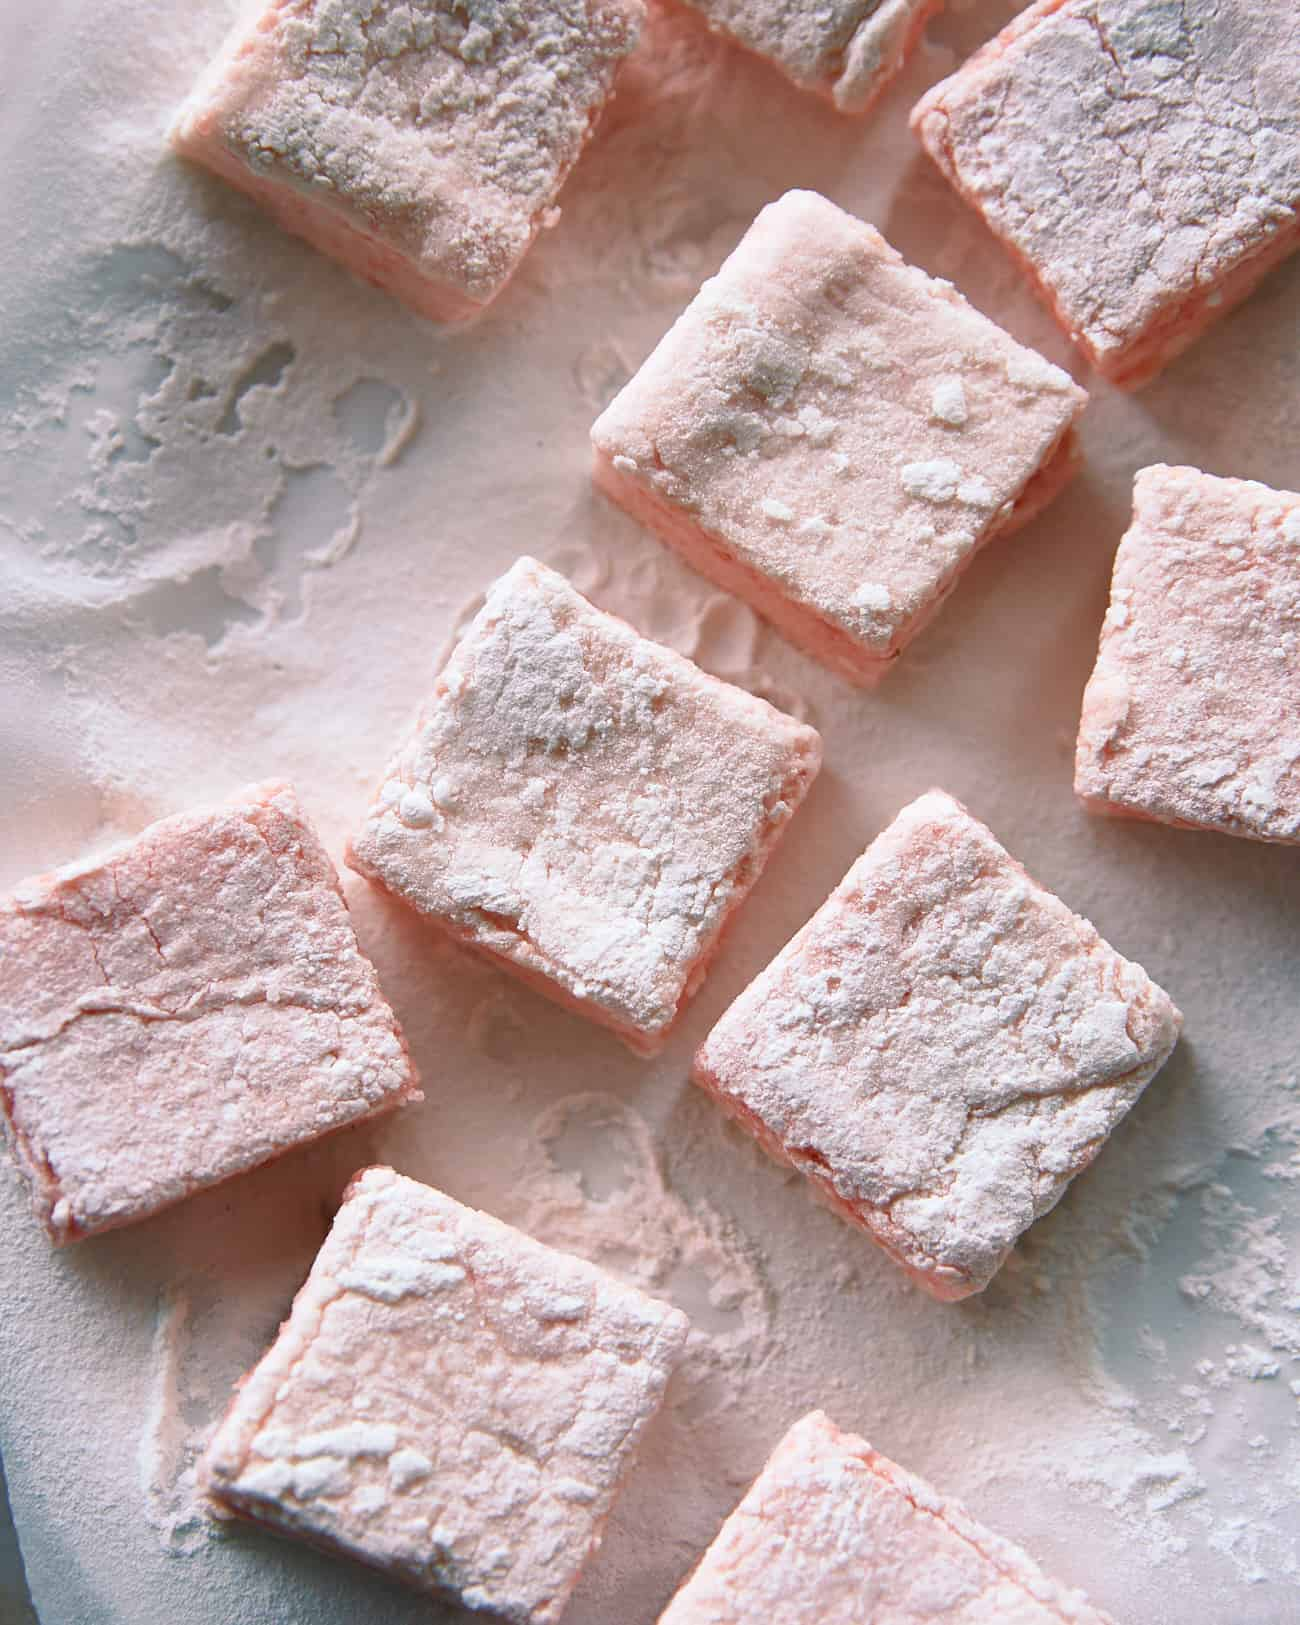 close up of vegan rhubarb marshmallows on baking paper, dusted with icing sugar